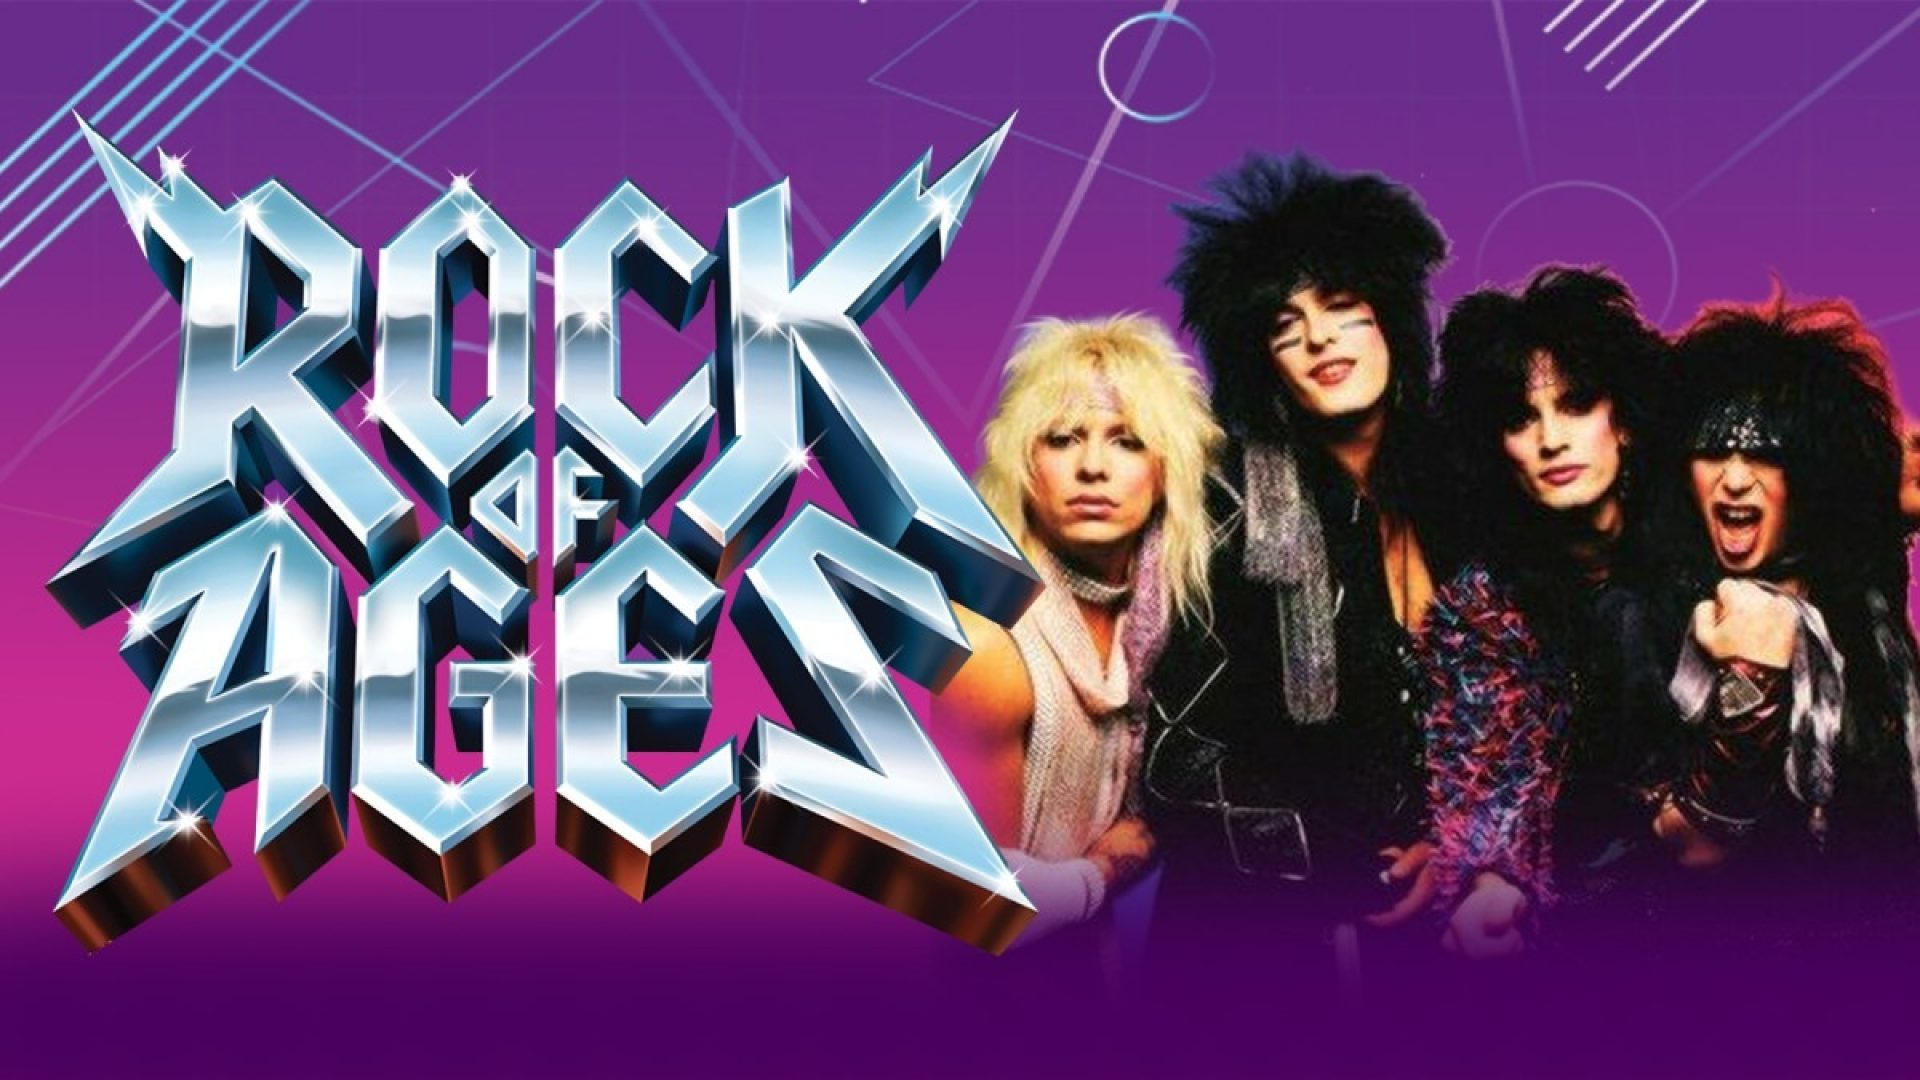 Rock of Ages Nightclub event